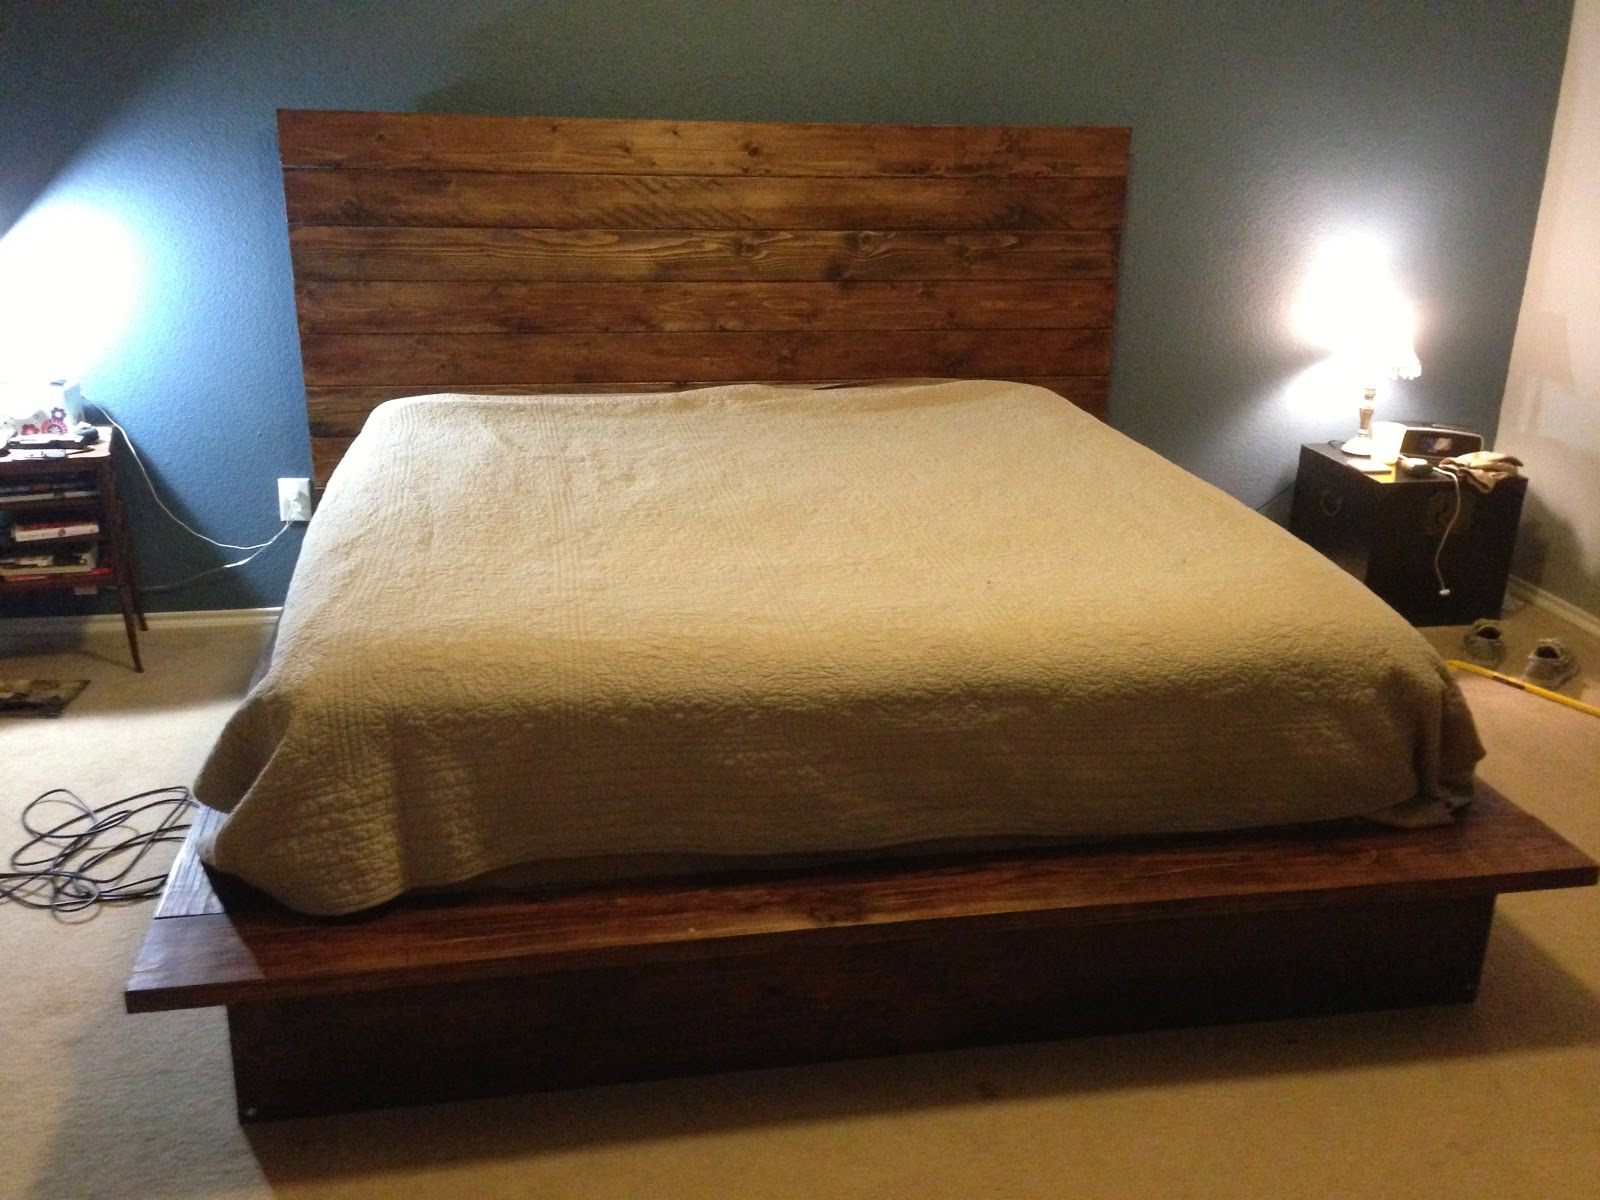 Fire fly fisherman diy bed frame